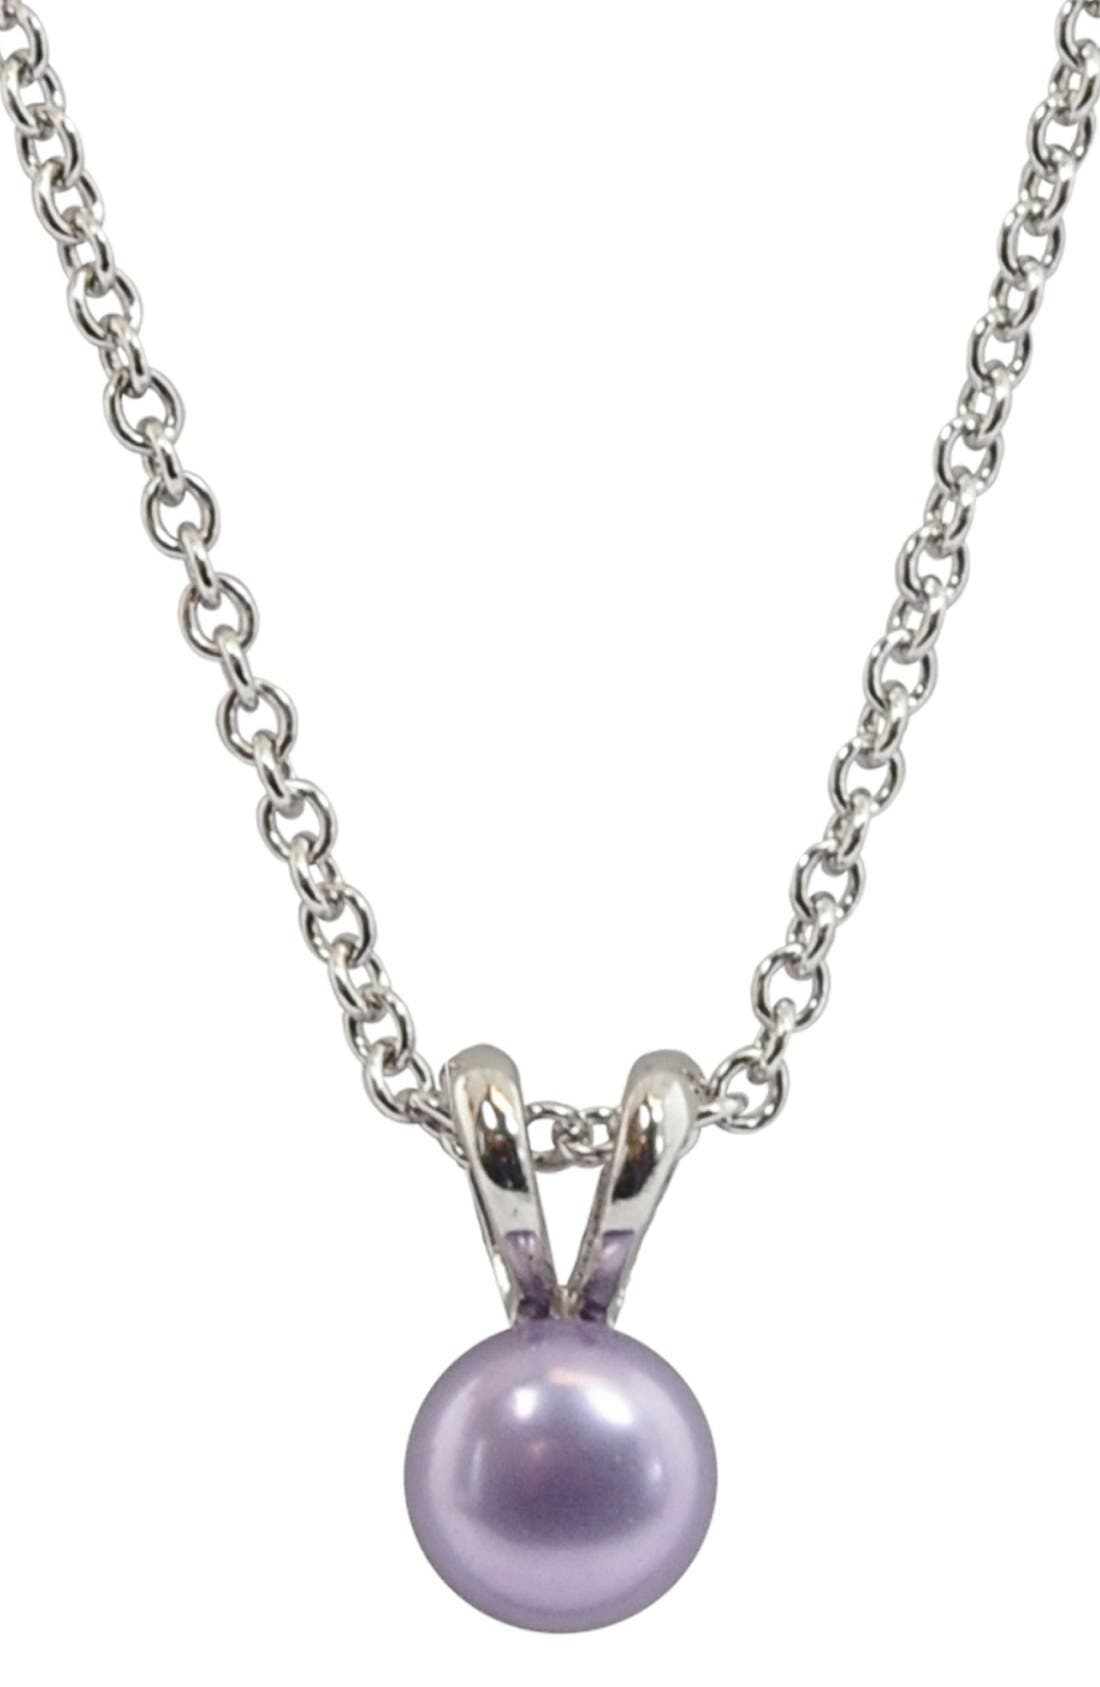 Main Image - HONORA Violet Freshwater Pearl Necklace (Girls)